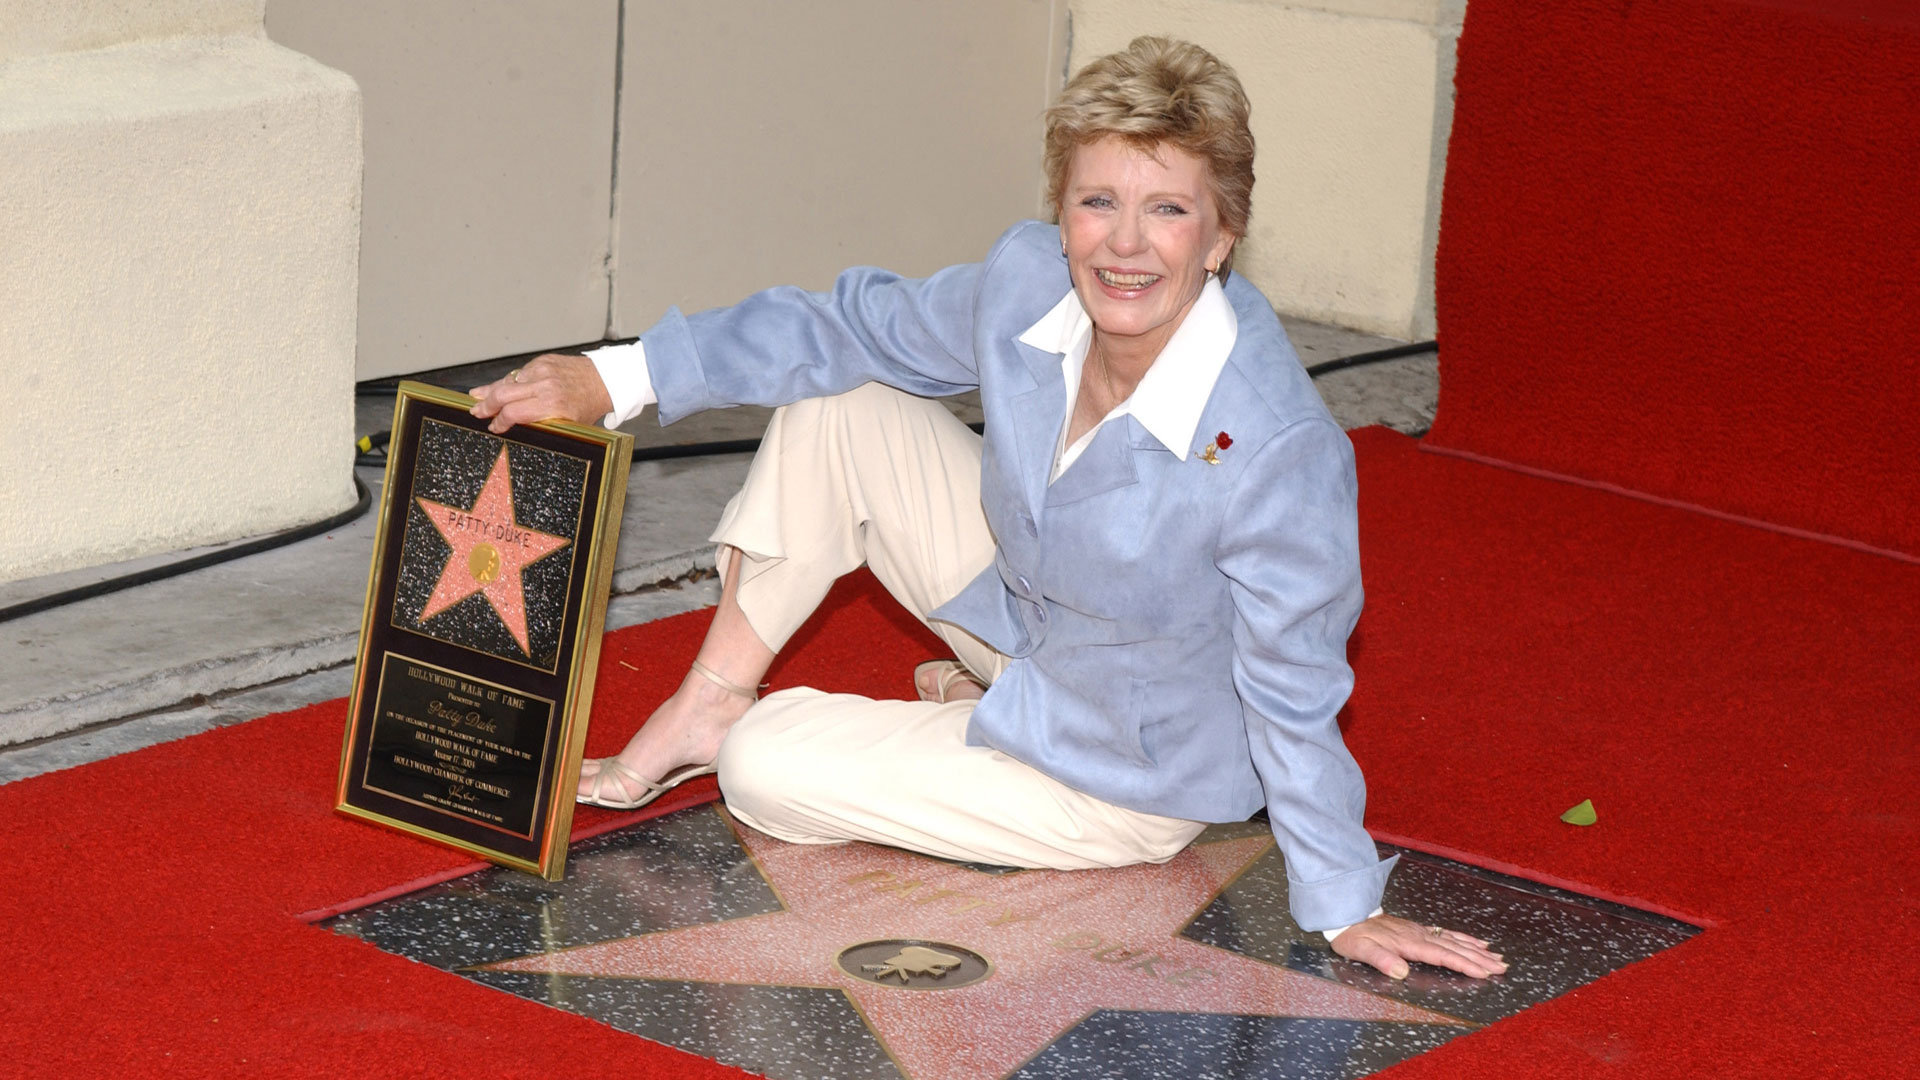 Patty Duke (* 14. Dezember 1946 in Elmhurst, New York; † 29. März 2016 in Coeur d'Alene, Idaho)